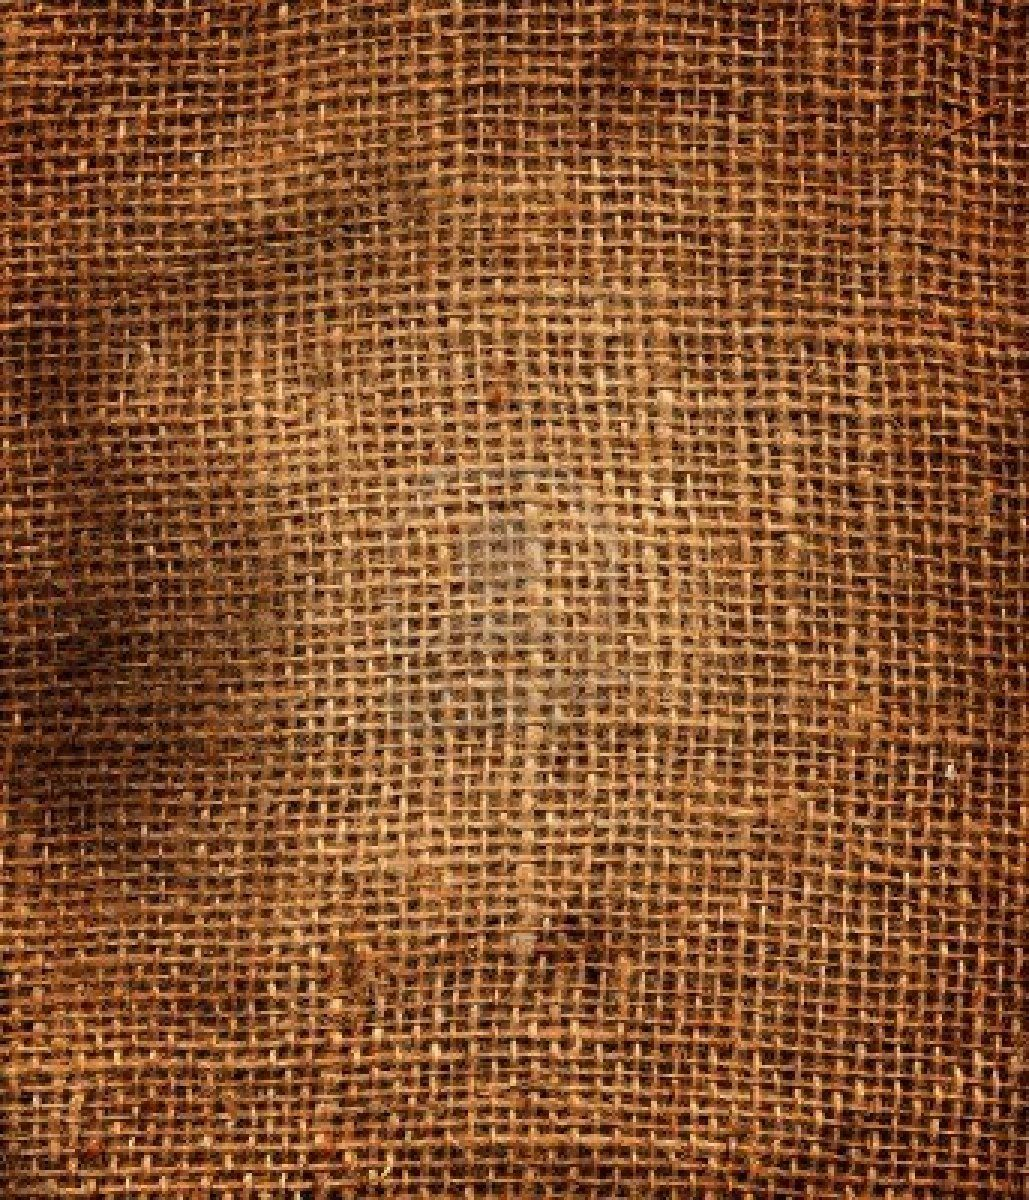 potato sack looking at the texture of the material